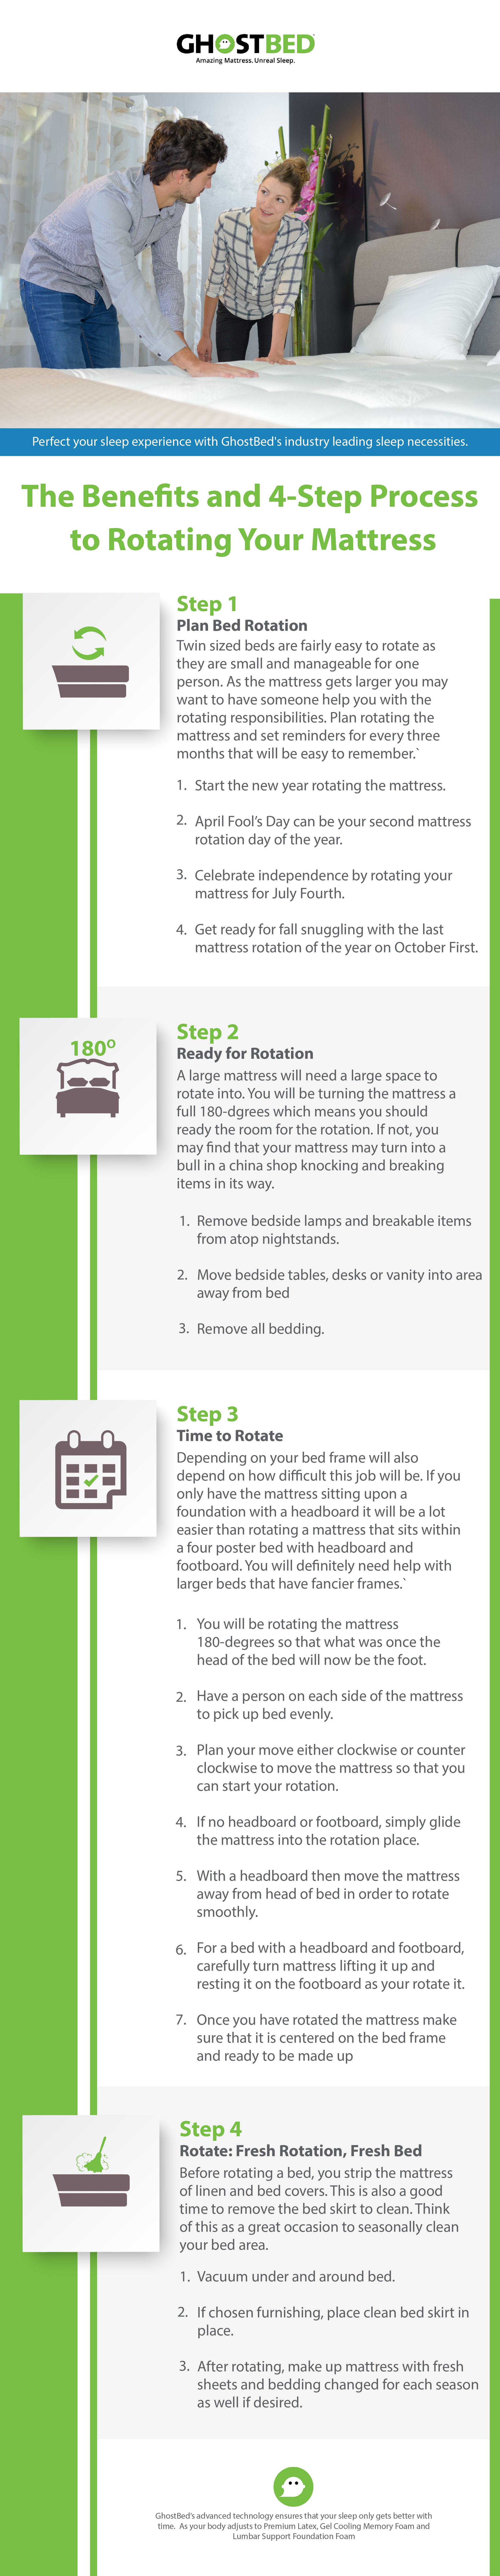 the benefits and 4 step process to rotating your mattress pain